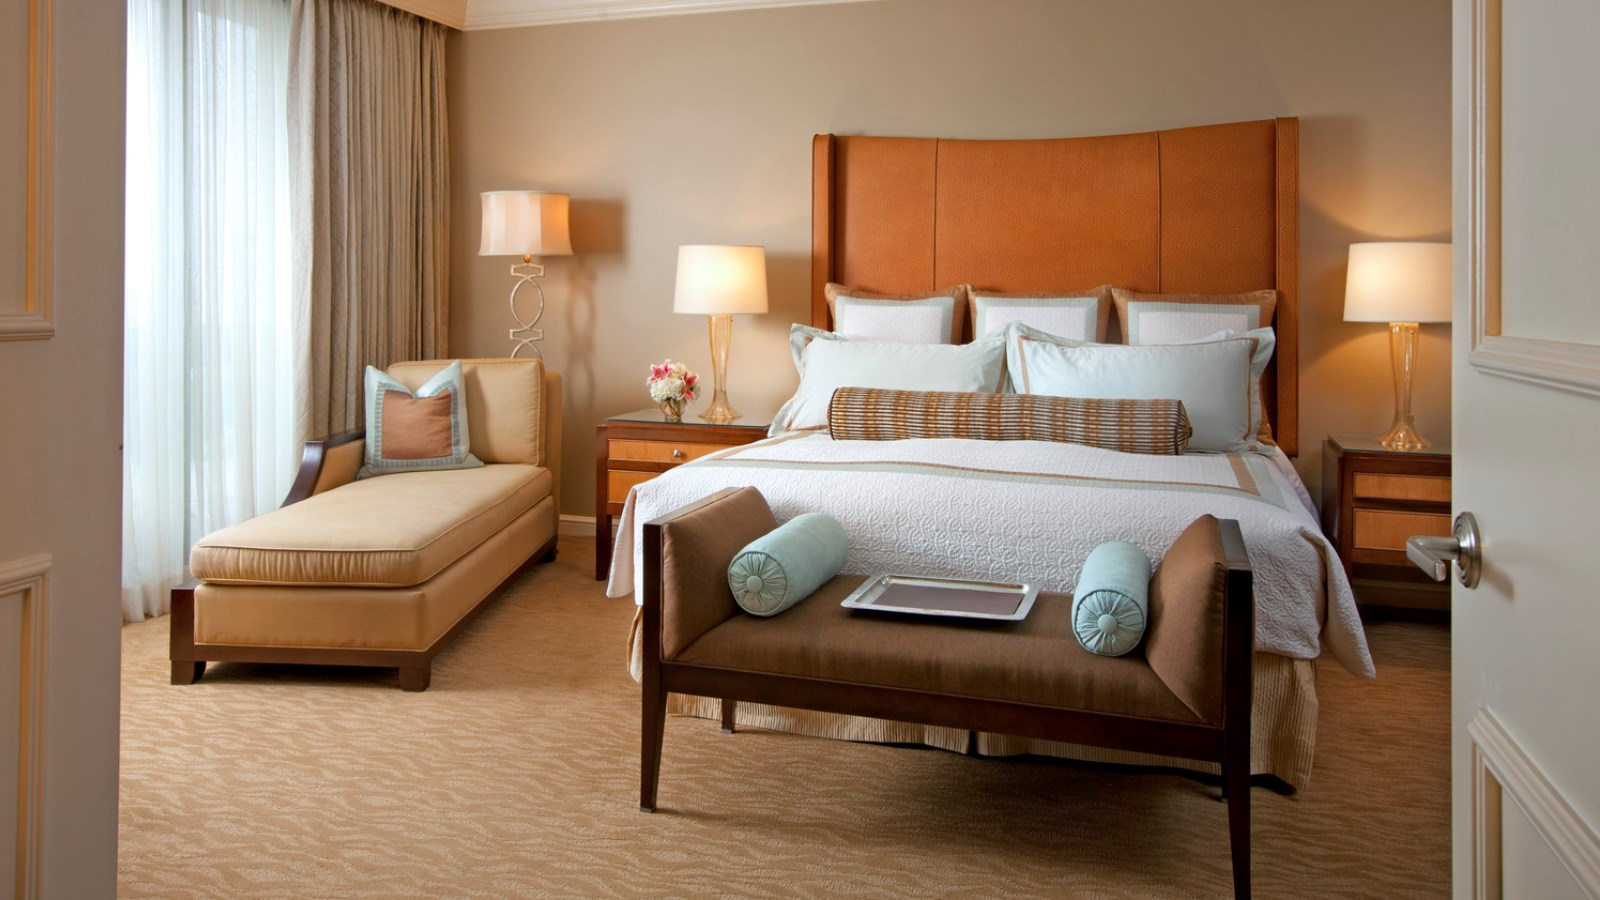 Royal Suite - Luxury Hotels in Houston - The St. Regis Houston Hotel